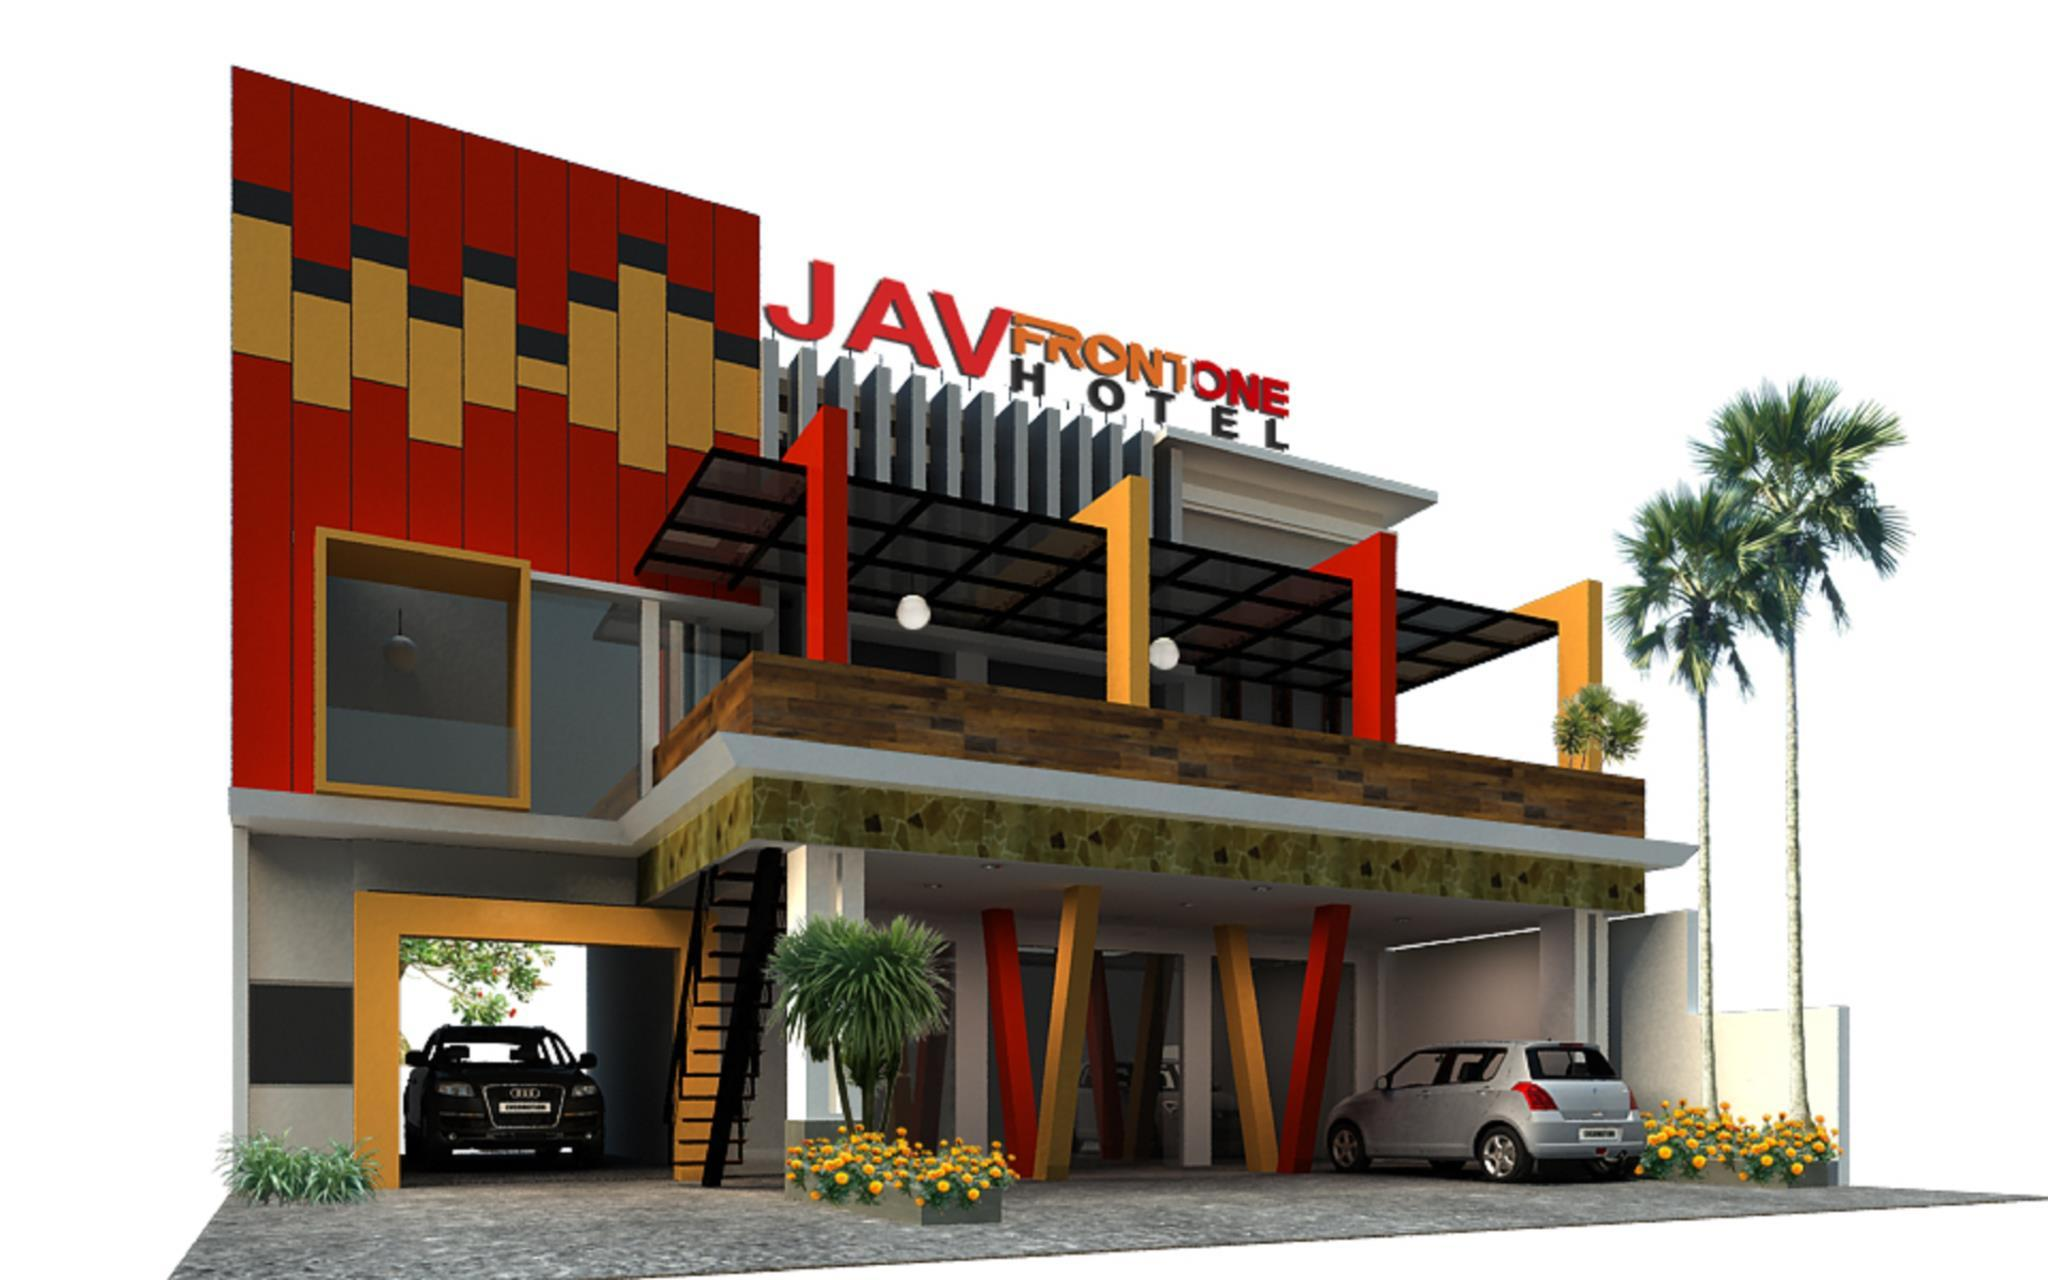 JAV Front One Hotel Lahat, Lahat